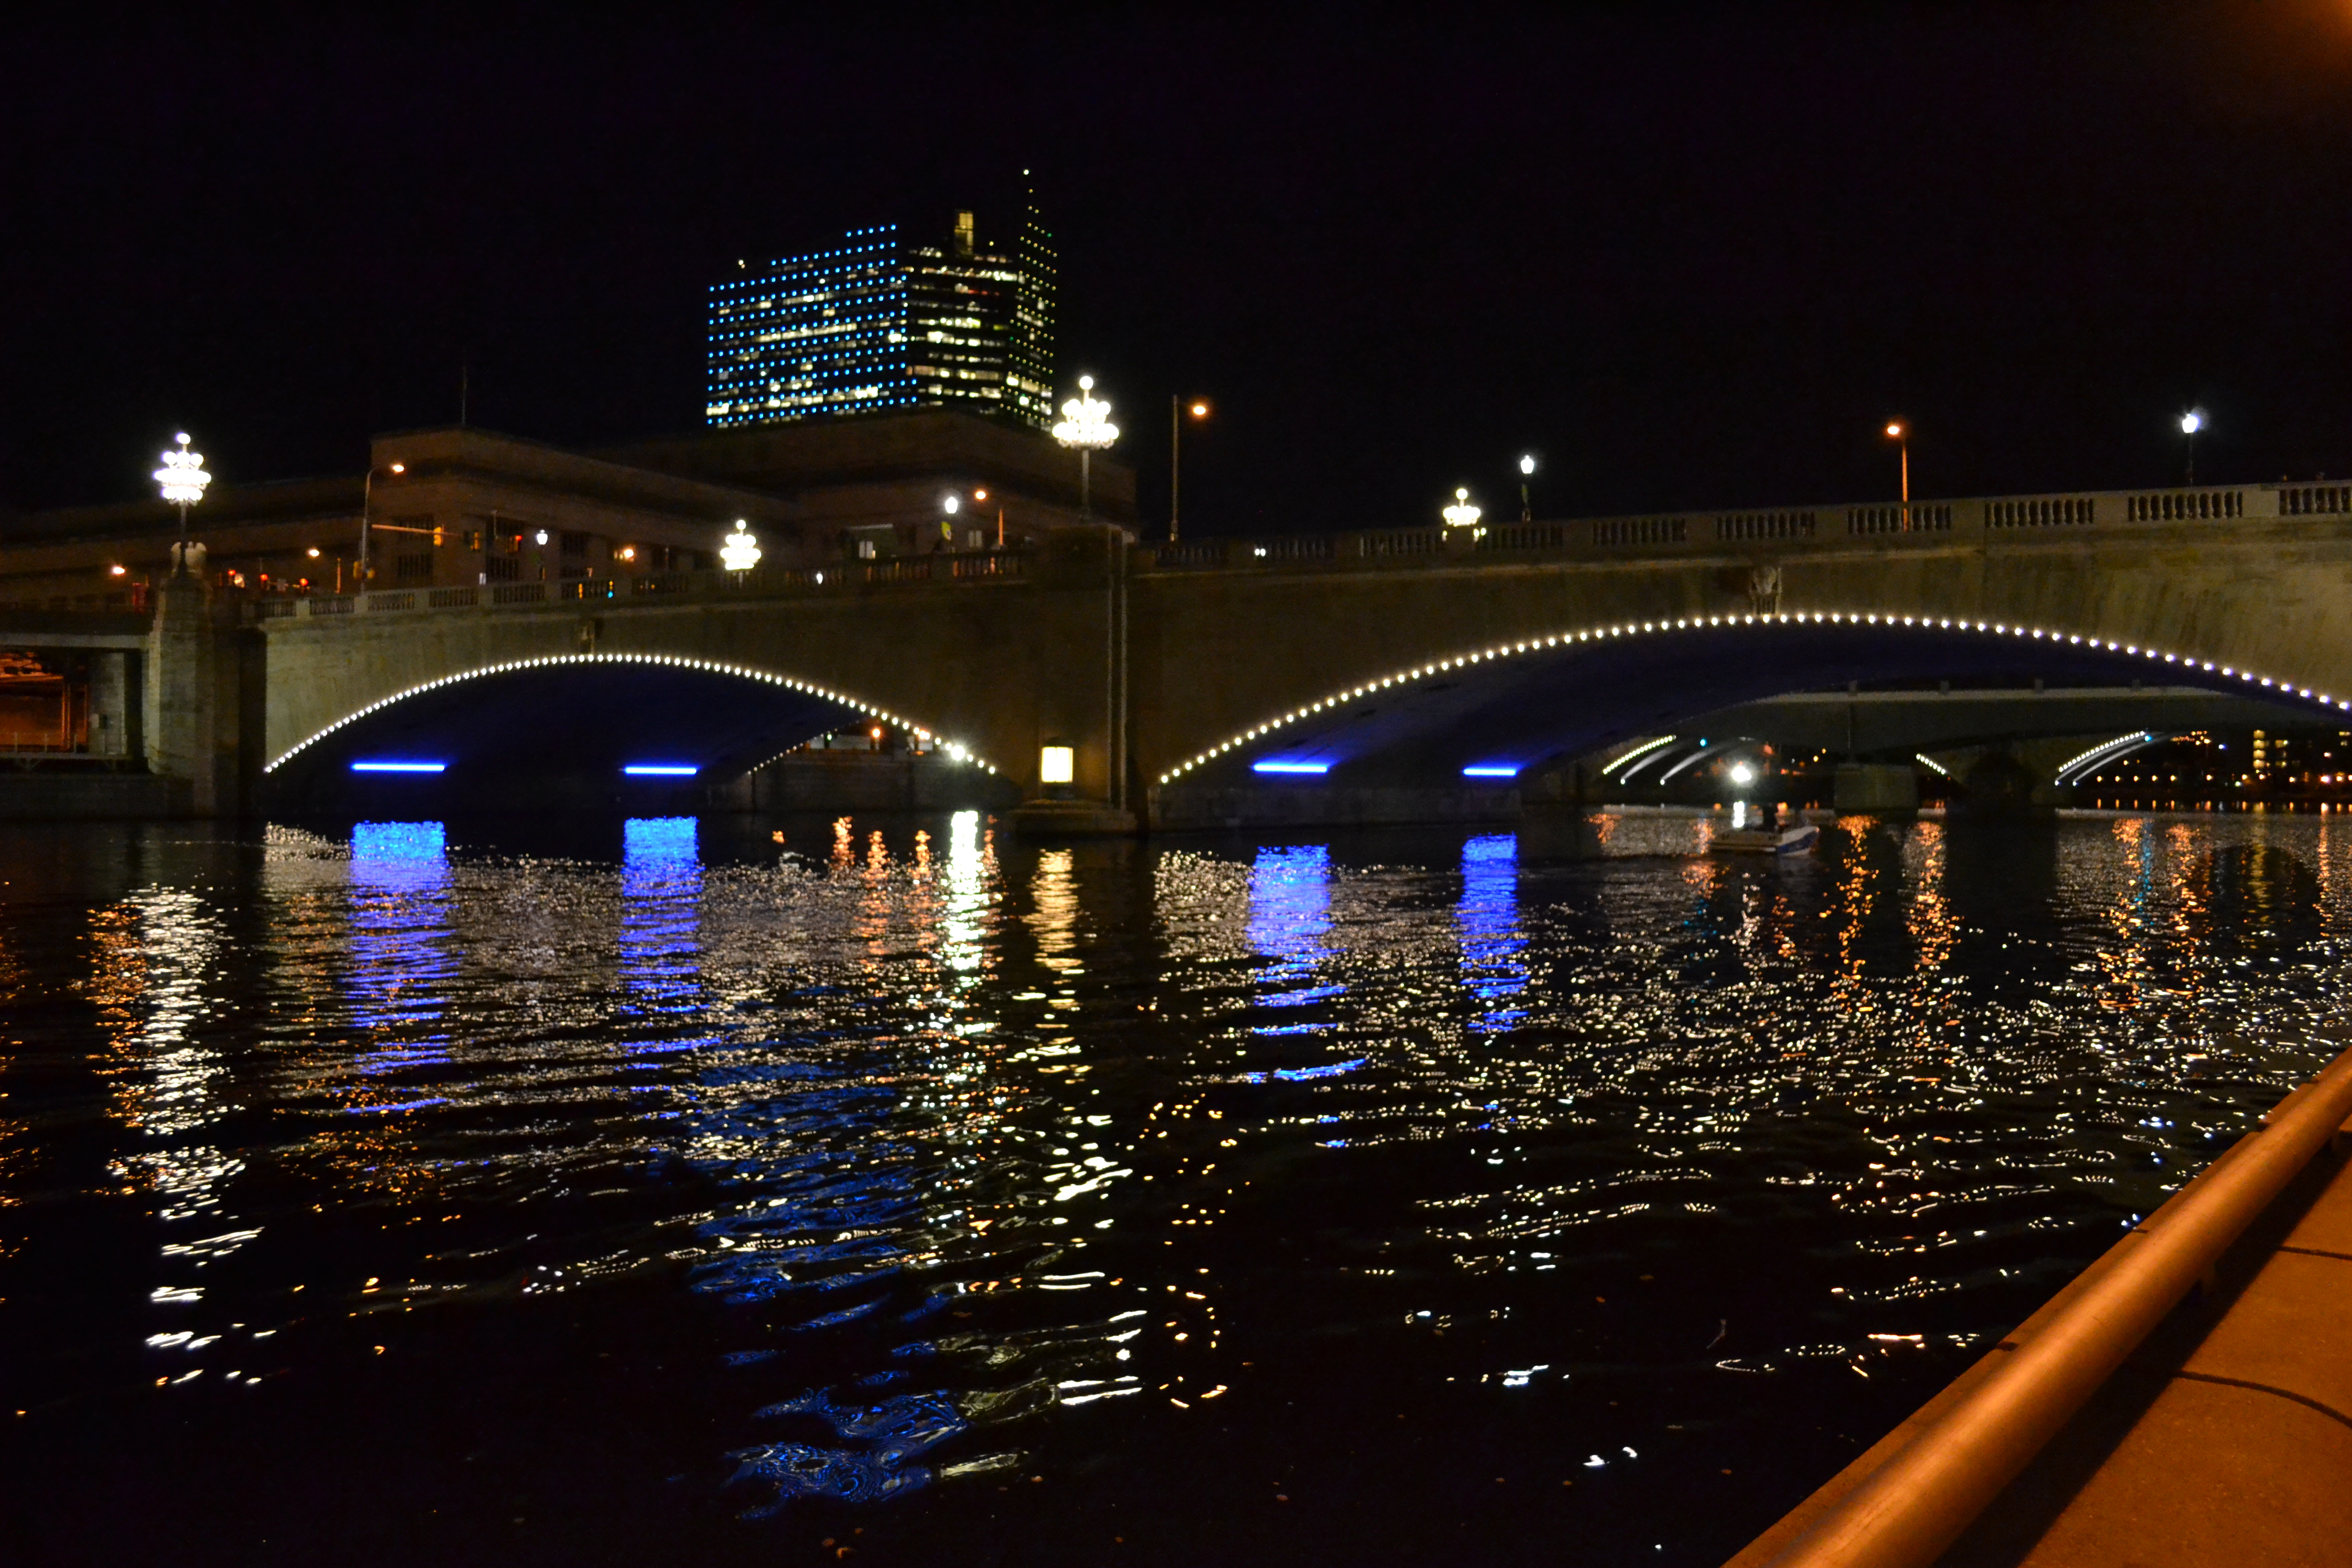 The new lights were part of the Schuylkill Banks Bridge Lighting project